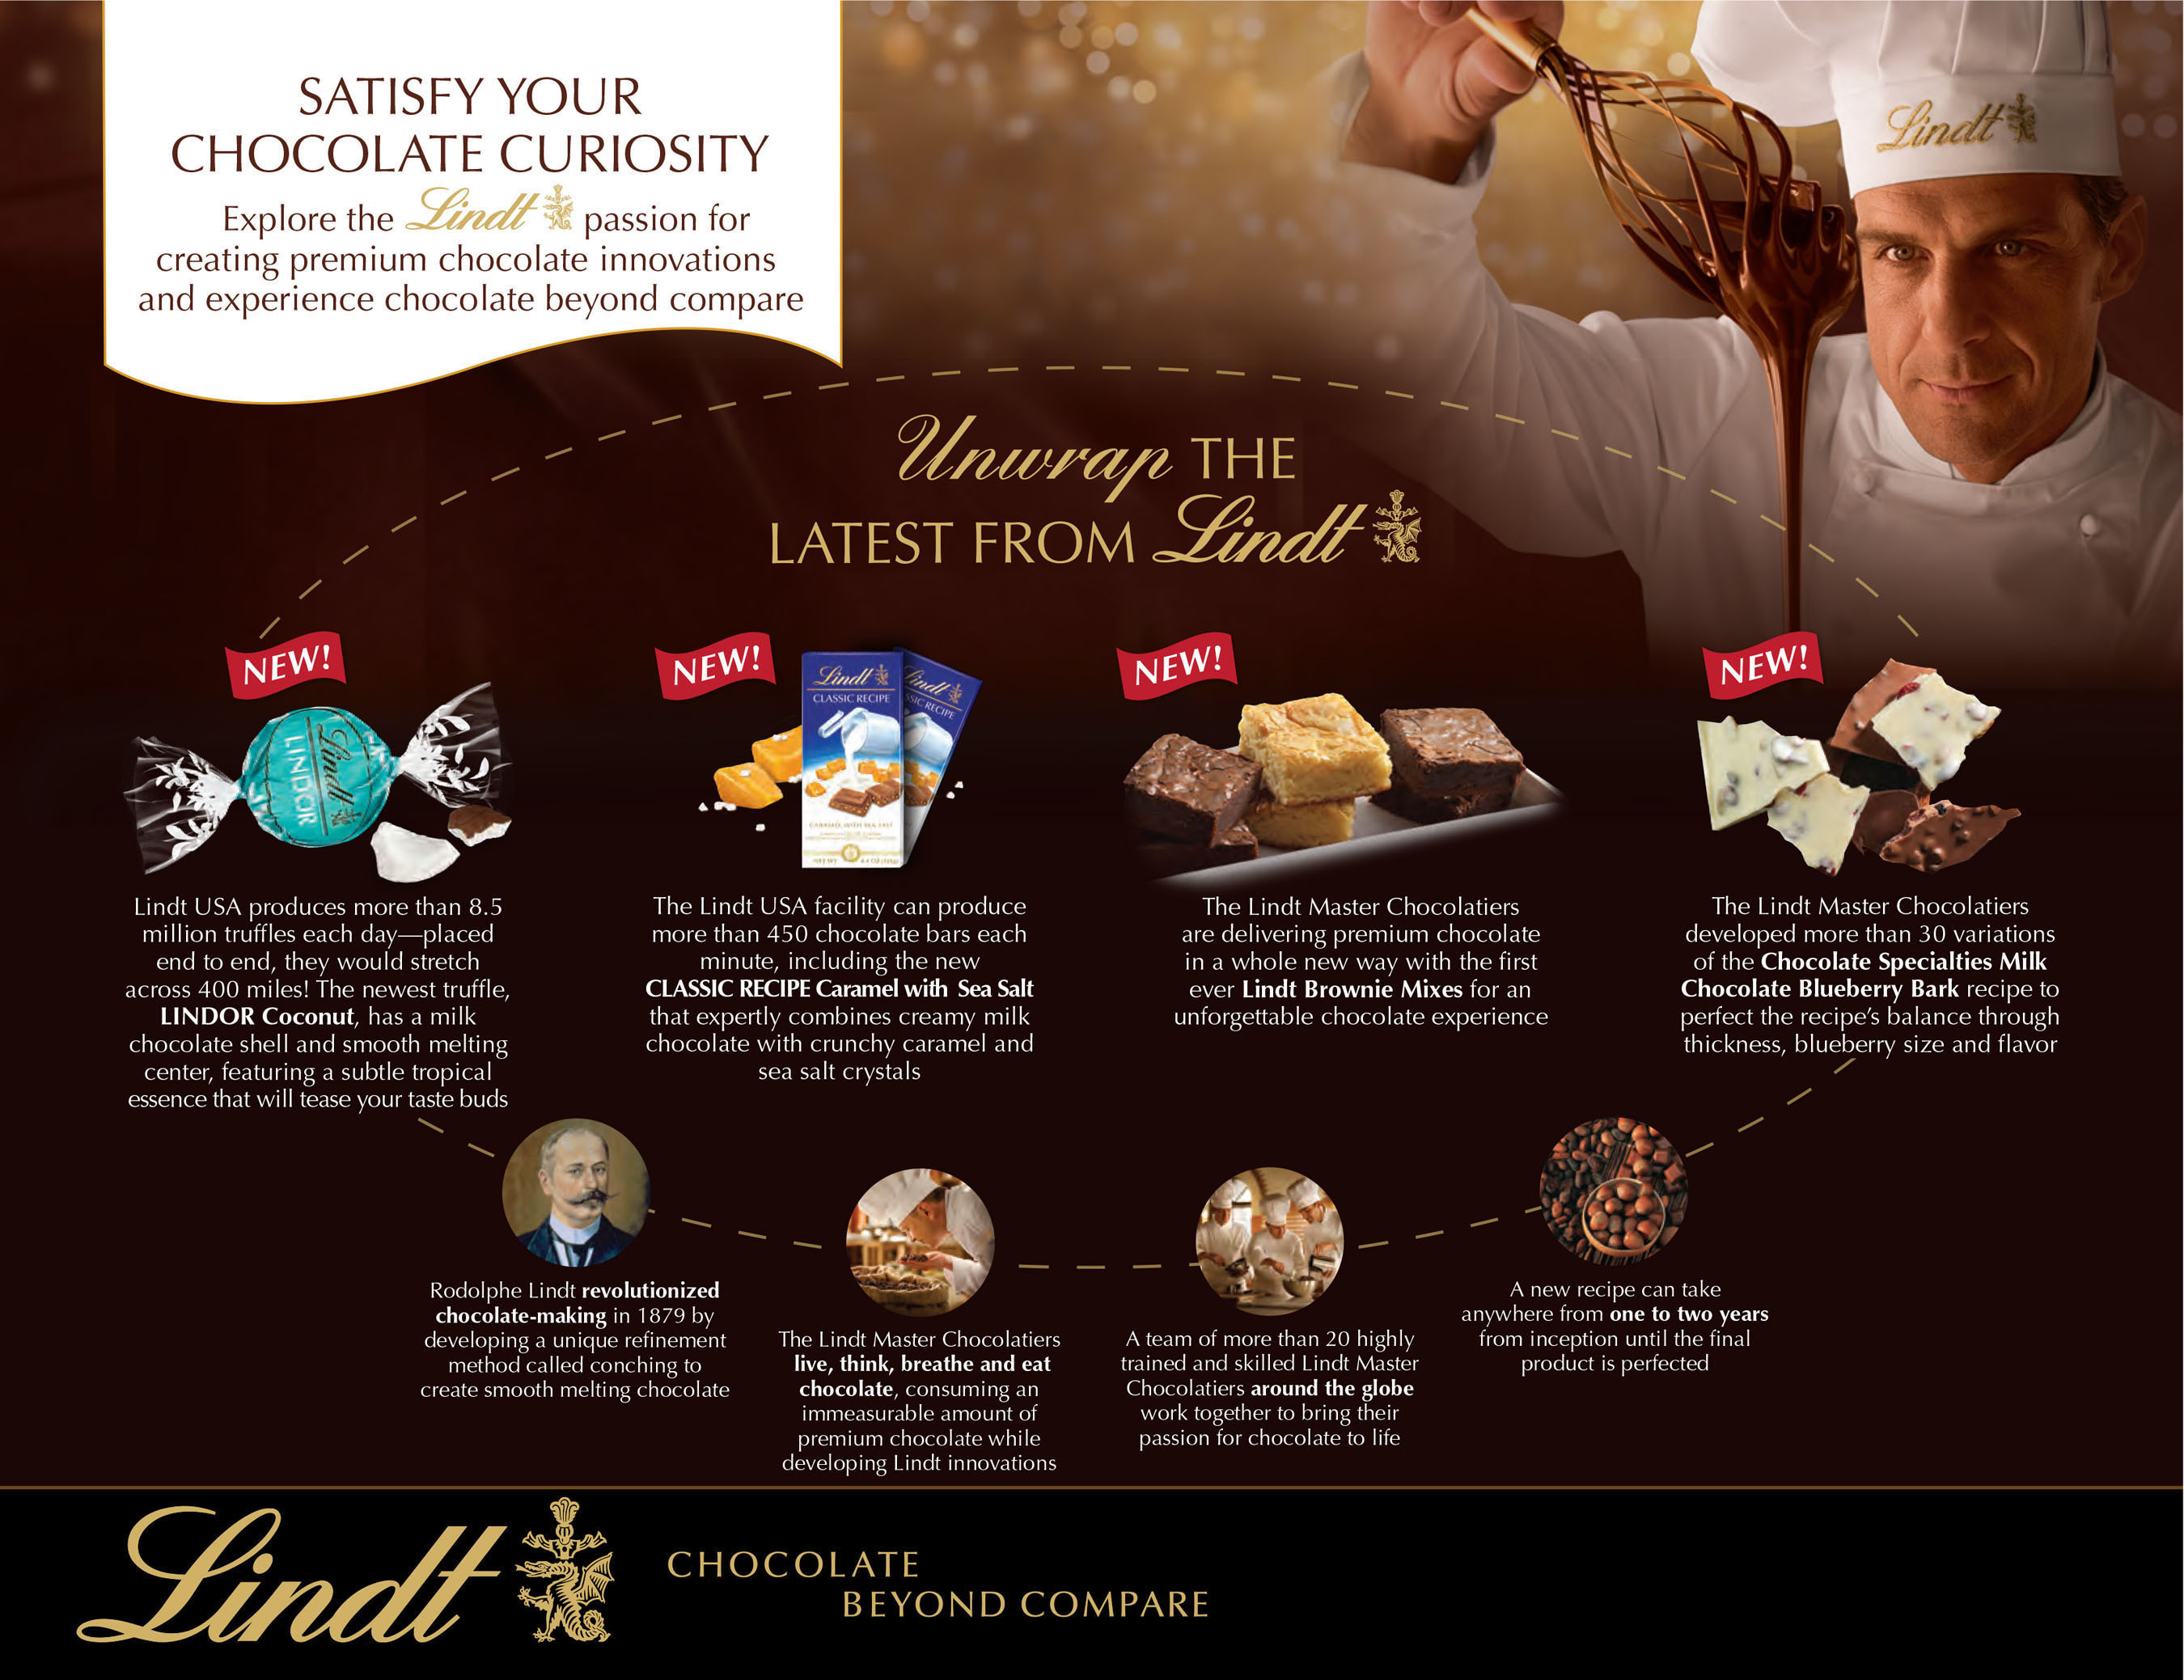 Lindt Continues Its Rich History Of Premium Chocolate Innovations With Introduction Of New Signature Products. ...